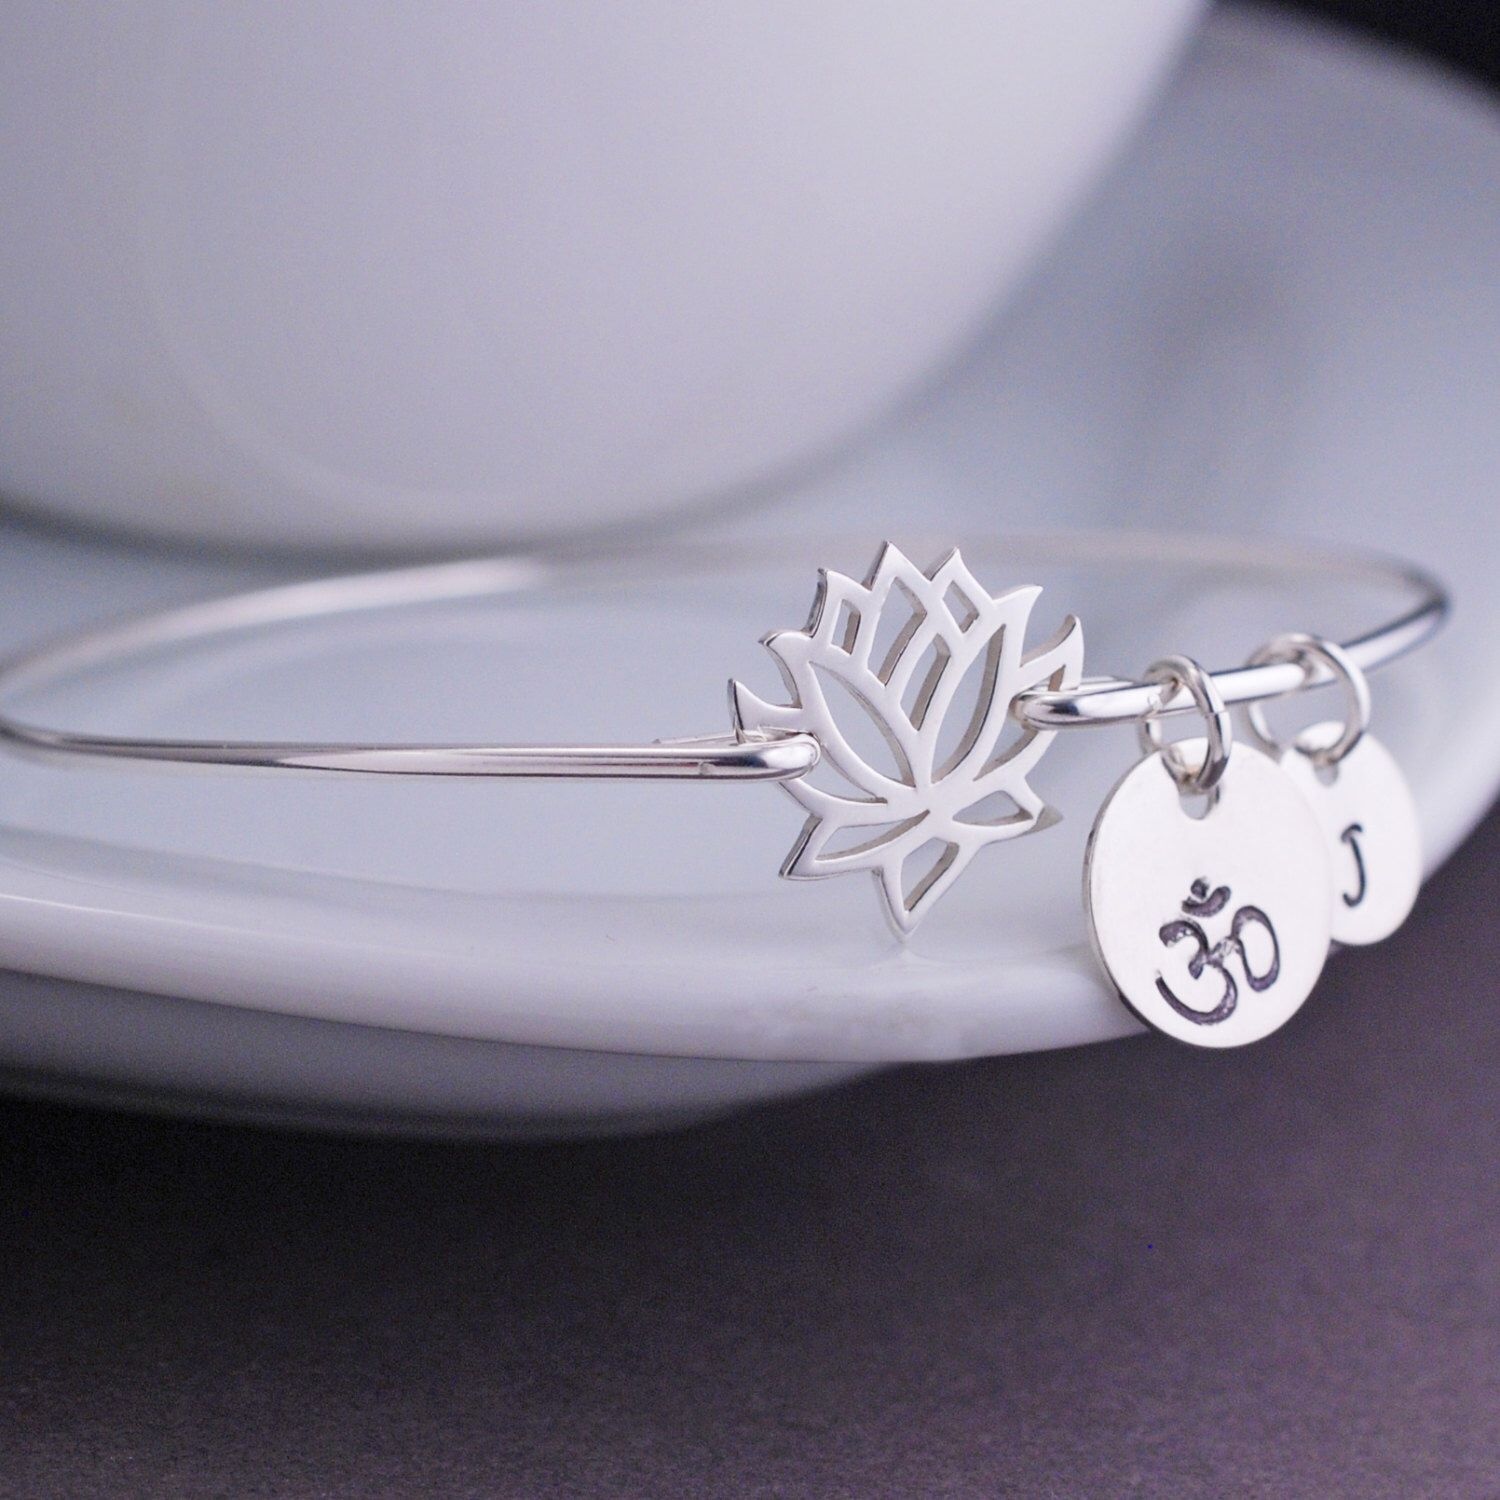 Lotus flower jewelry personalized sterling silver bangle bracelet lotus flower jewelry personalized sterling silver bangle bracelet lotus bracelet yoga bracelet silver bangle izmirmasajfo Images